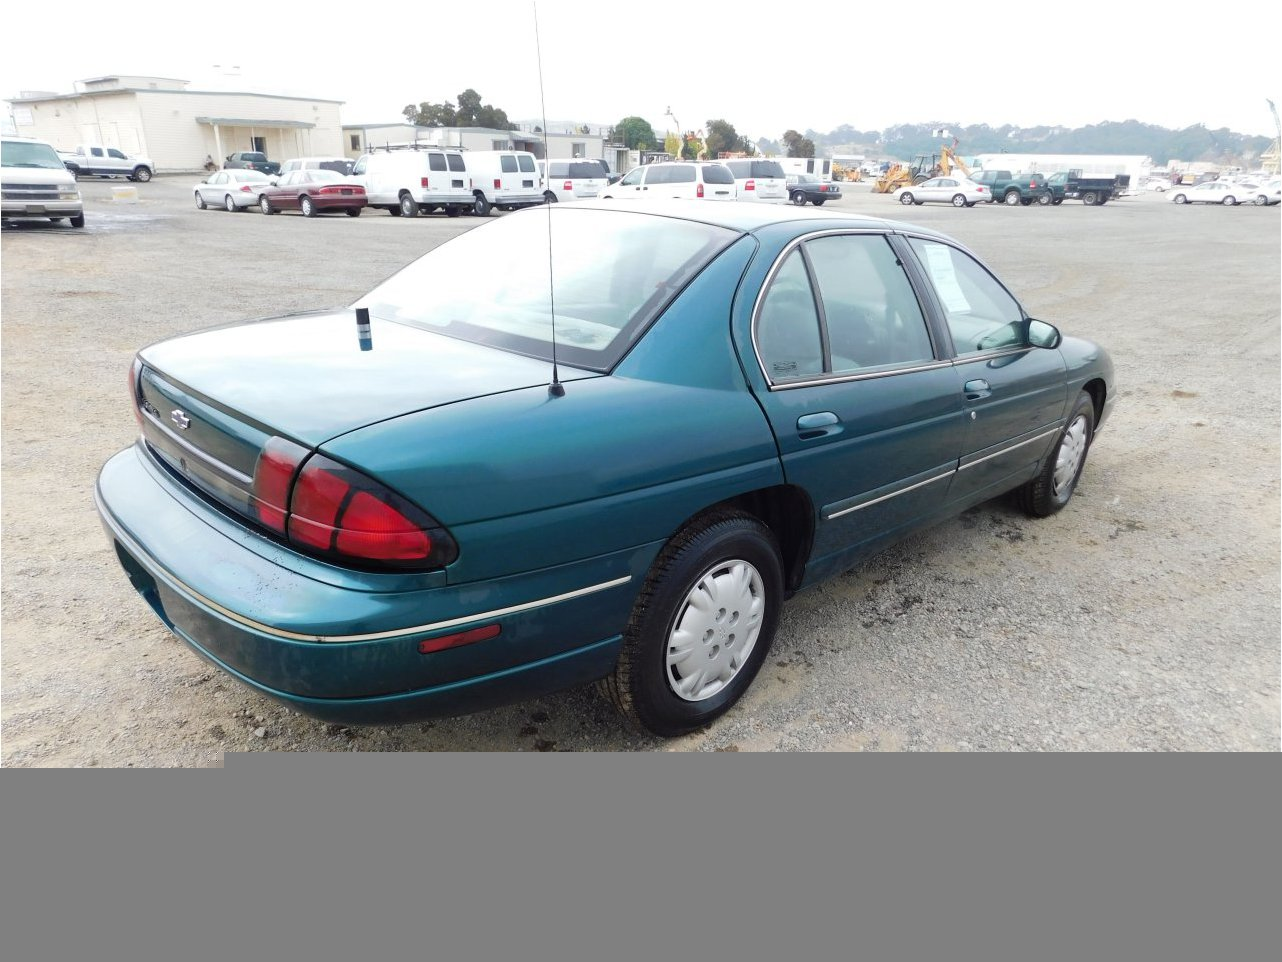 2000 Chevrolet Lumina For Sale 10 Used Cars From $600